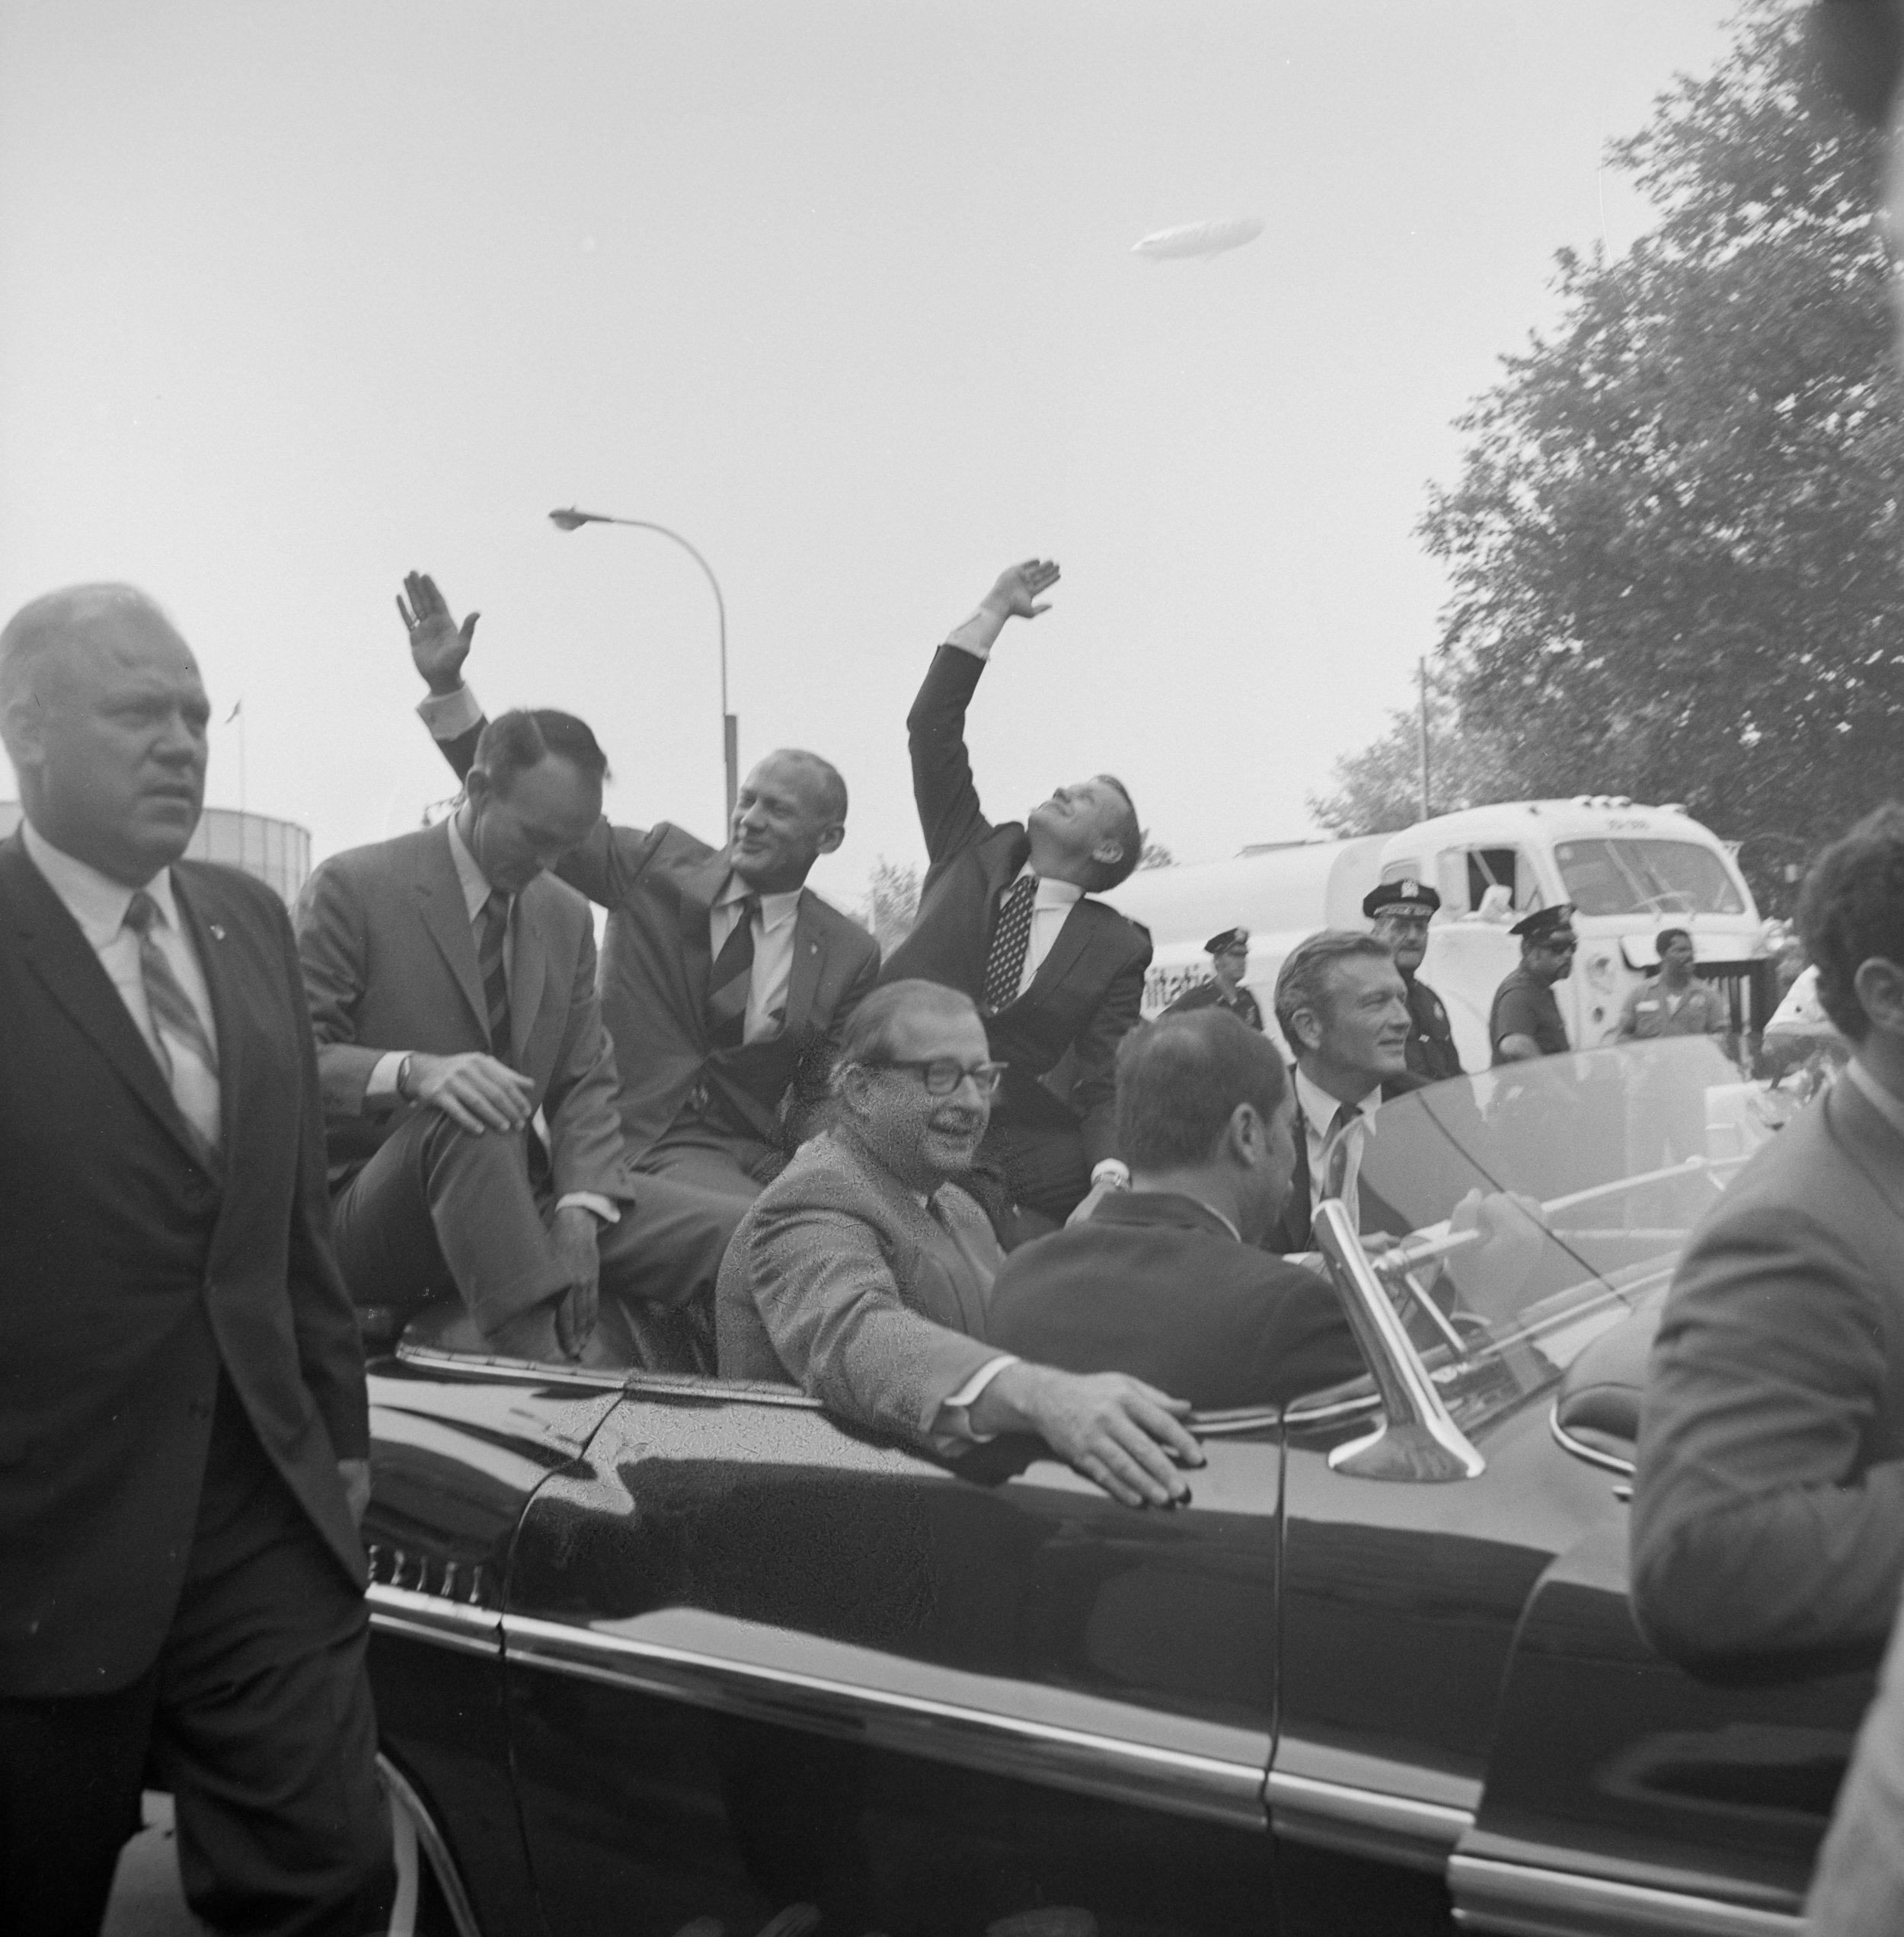 Seated on the custom-built Chrysler Imperial parade limousine, L-R: Apollo 11 astronauts Neil A. Armstrong, Col. Buzz Aldrin, Lt. Col. Michael Collins, wave to onlookers. Mayor Lindsay is seated at right, August 13, 1969. Department of Sanitation Collection, NYC Municipal Archives.